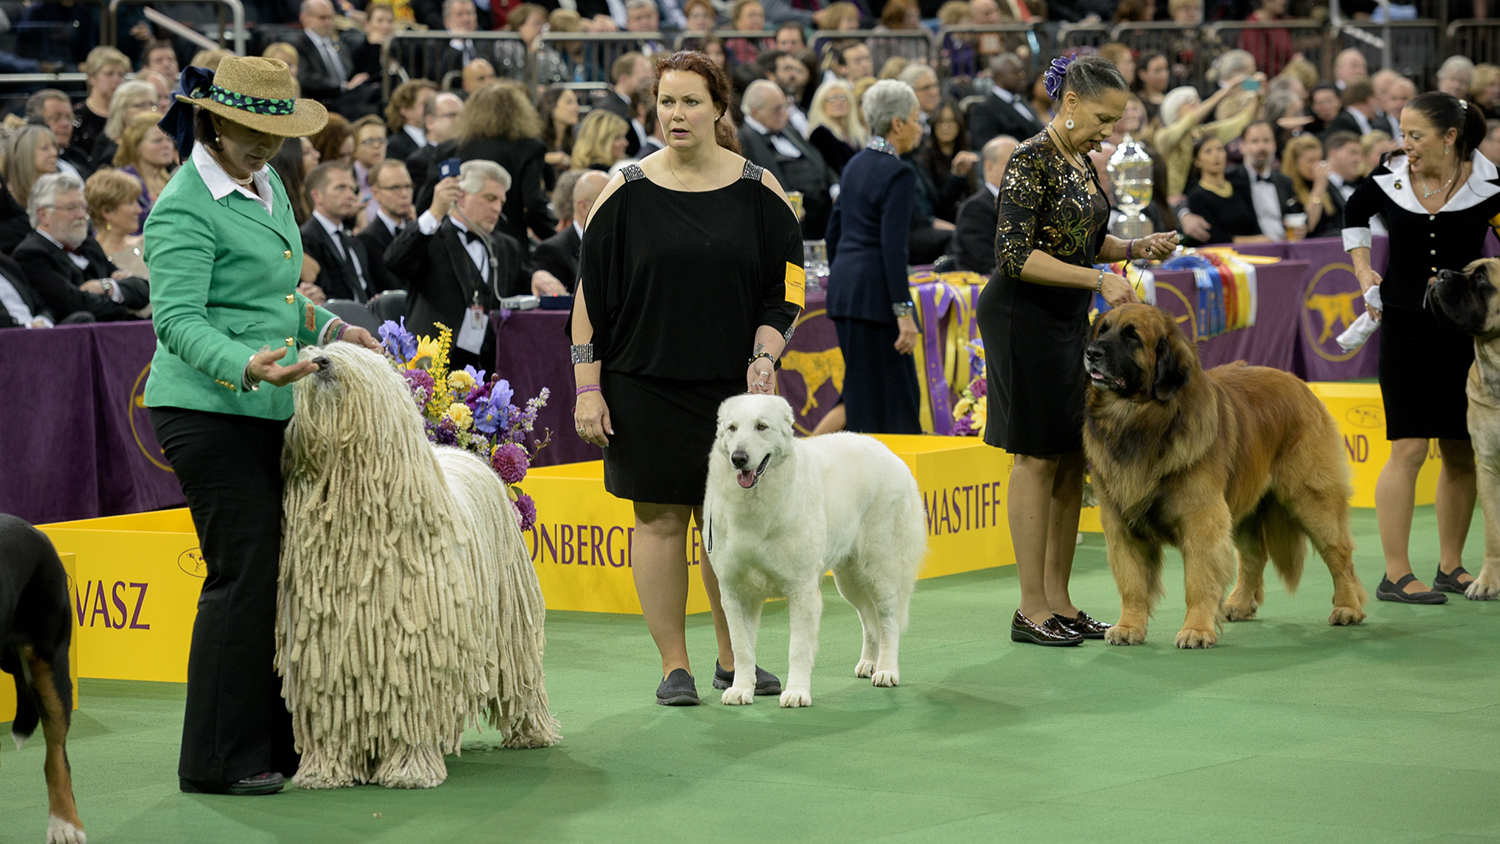 Westminster Dog Show 2015 See Photos Of The Annual Dog Show At Madison Square Garden